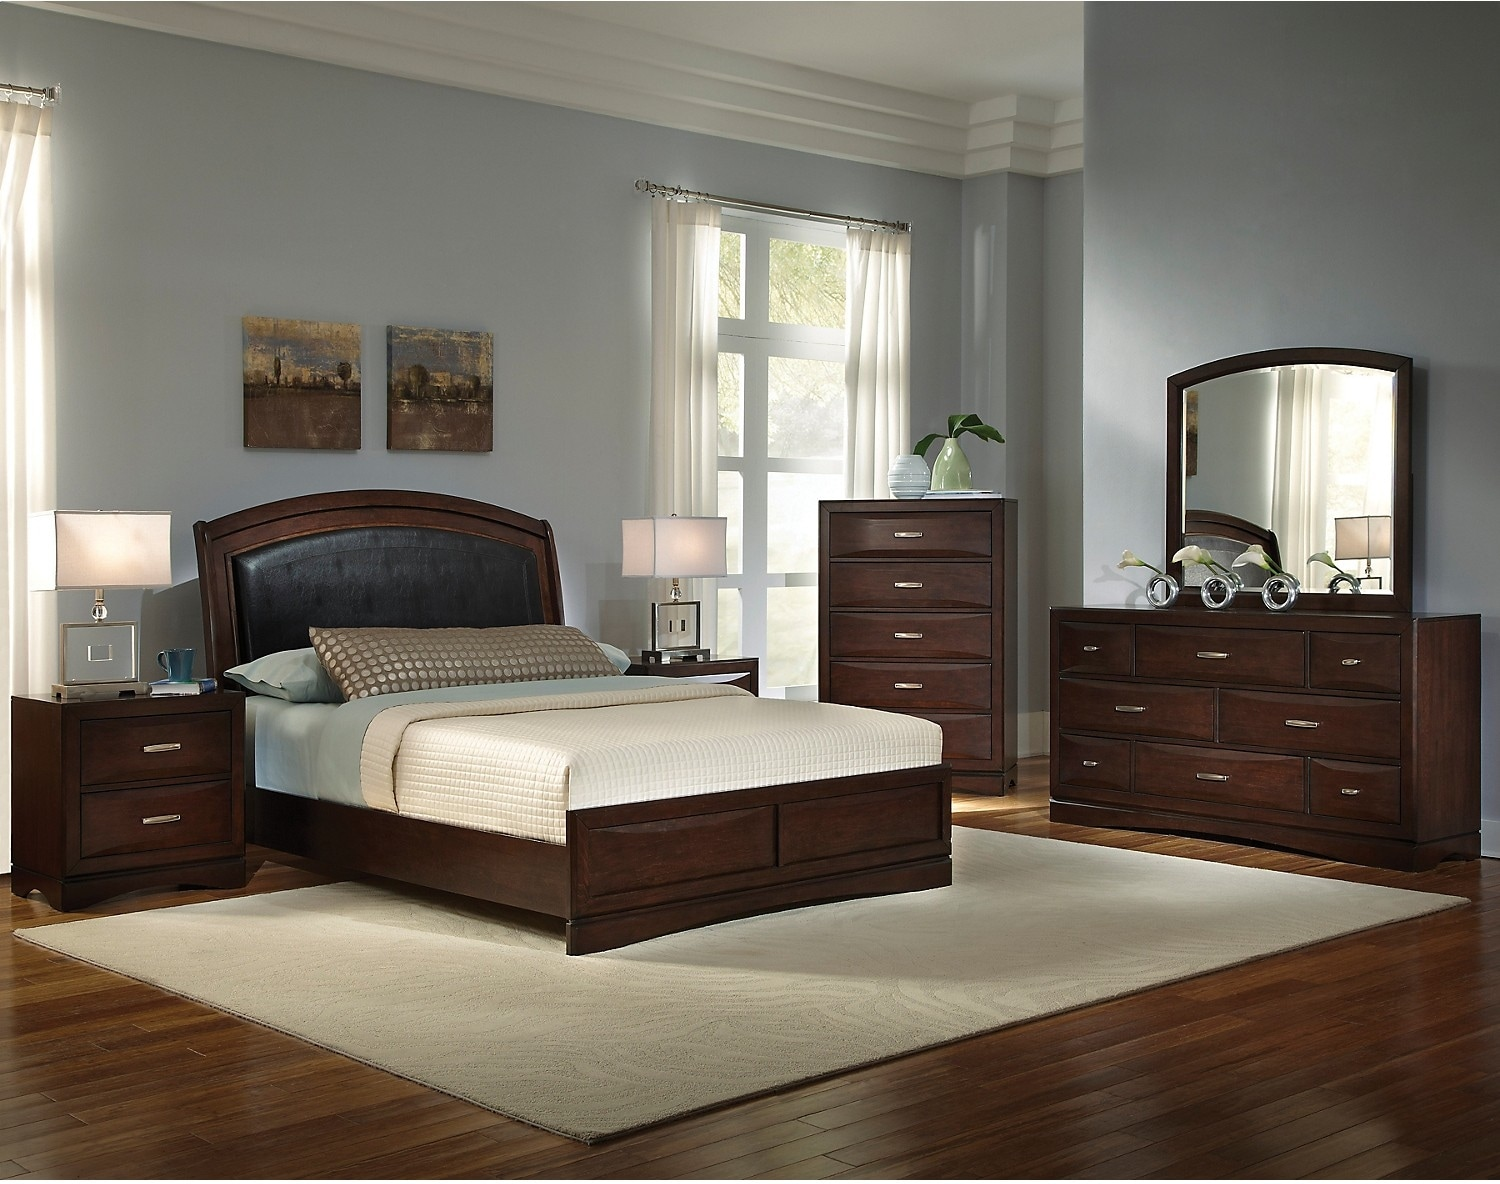 Beverly 8 piece queen bedroom set the brick for Best place for bedroom furniture